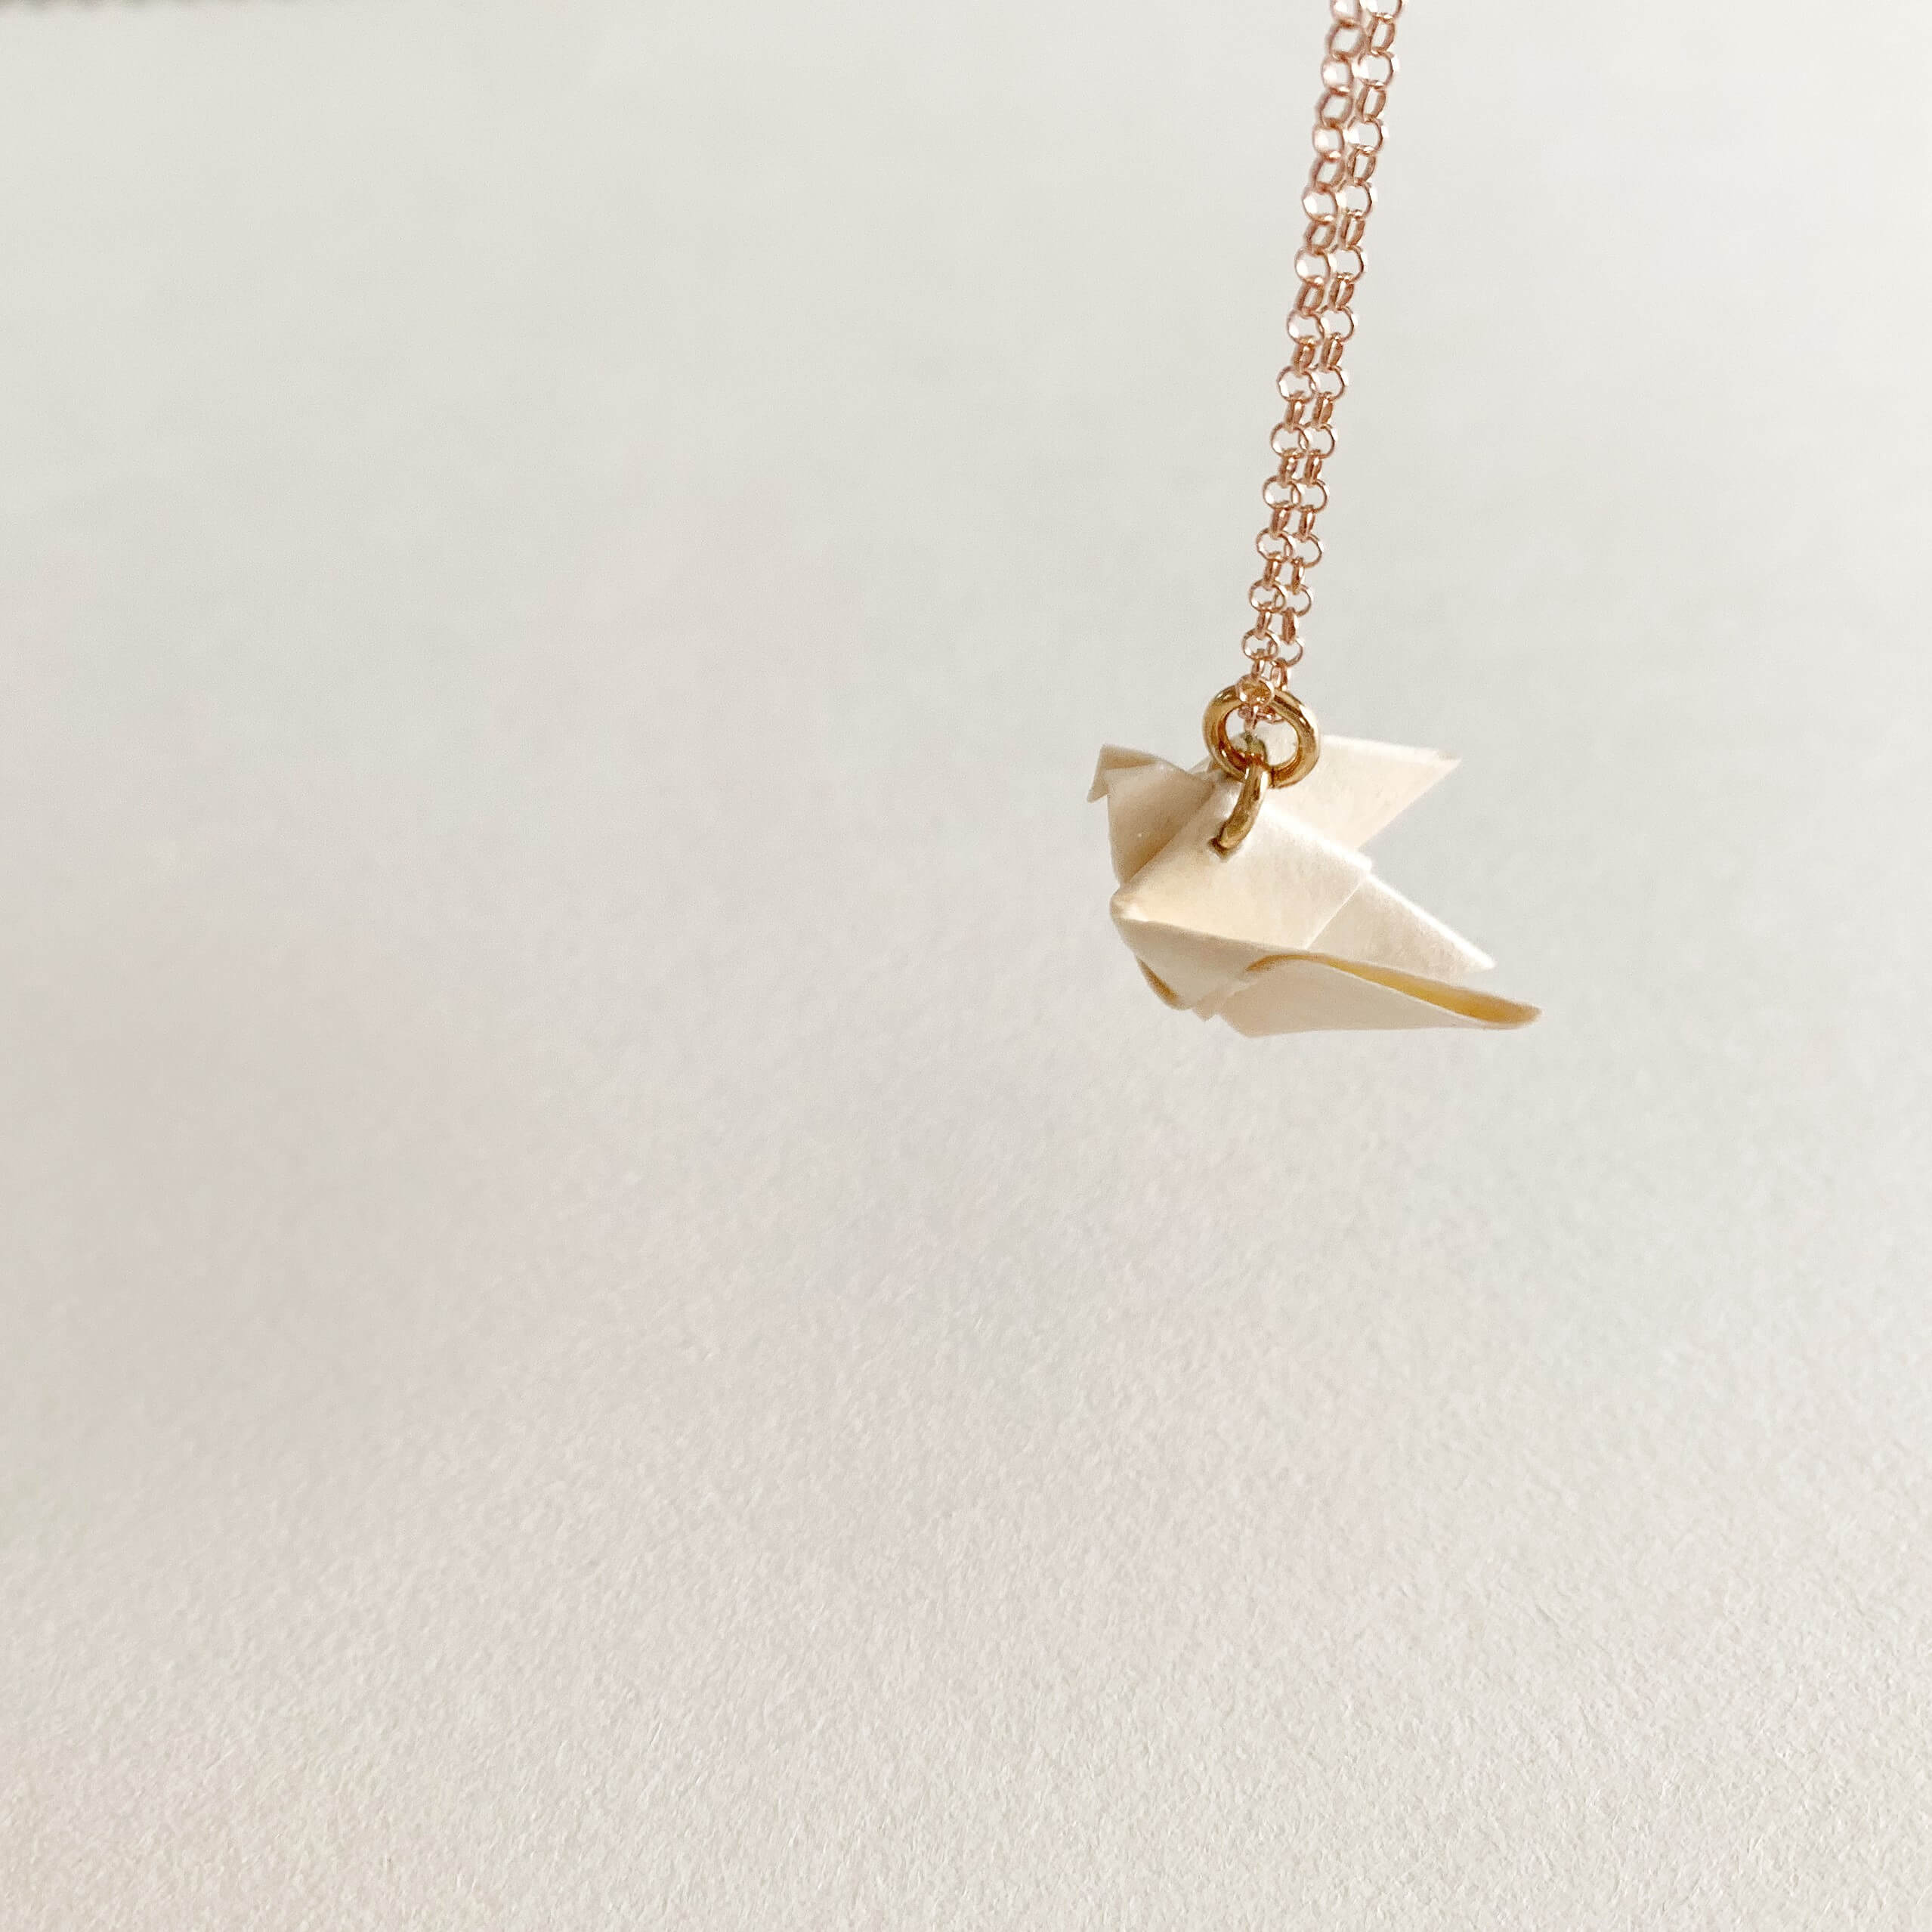 solidarity origami dove rose gold plated silver necklace